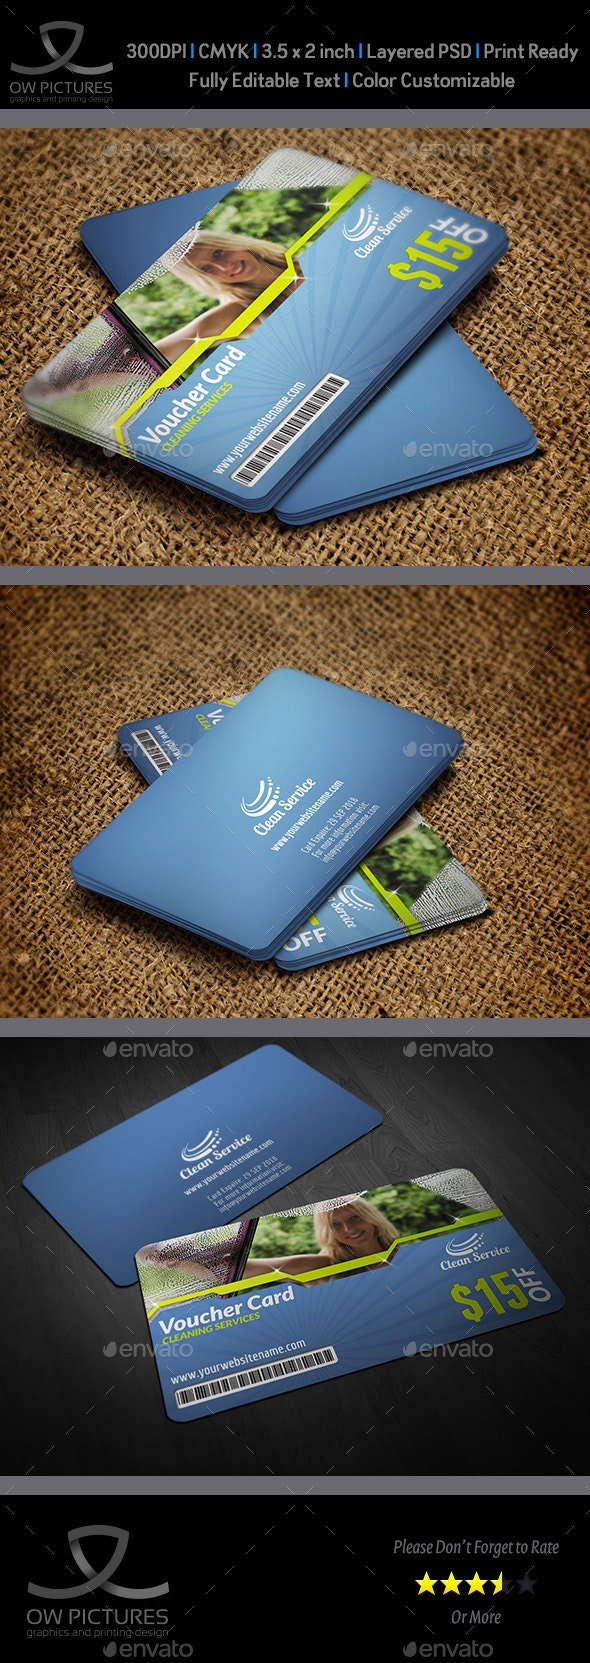 Cleaning Services Voucher Gift Card - Cards & Invites Print Templates